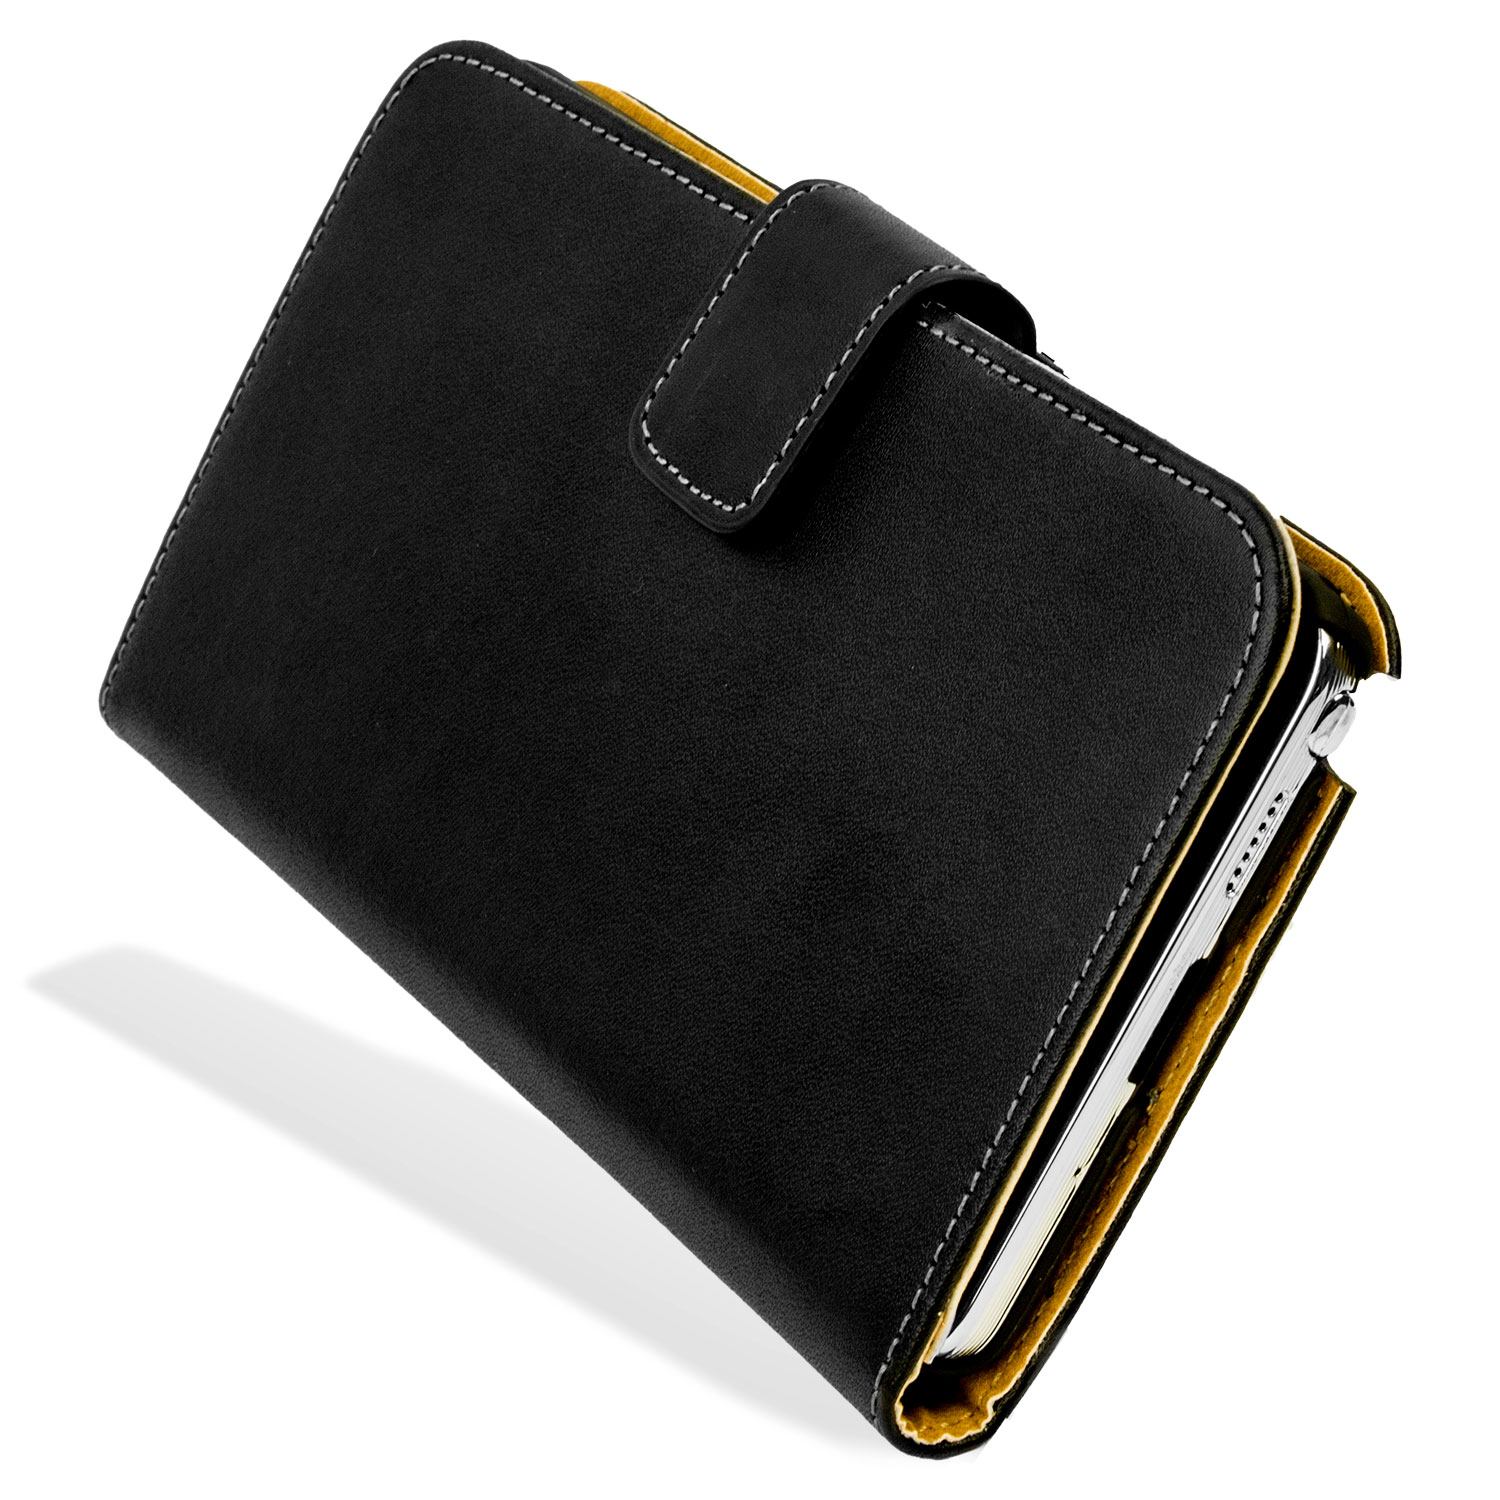 Housse samsung galaxy note 3 portefeuille style cuir noire for Housse telephone samsung galaxy note 3